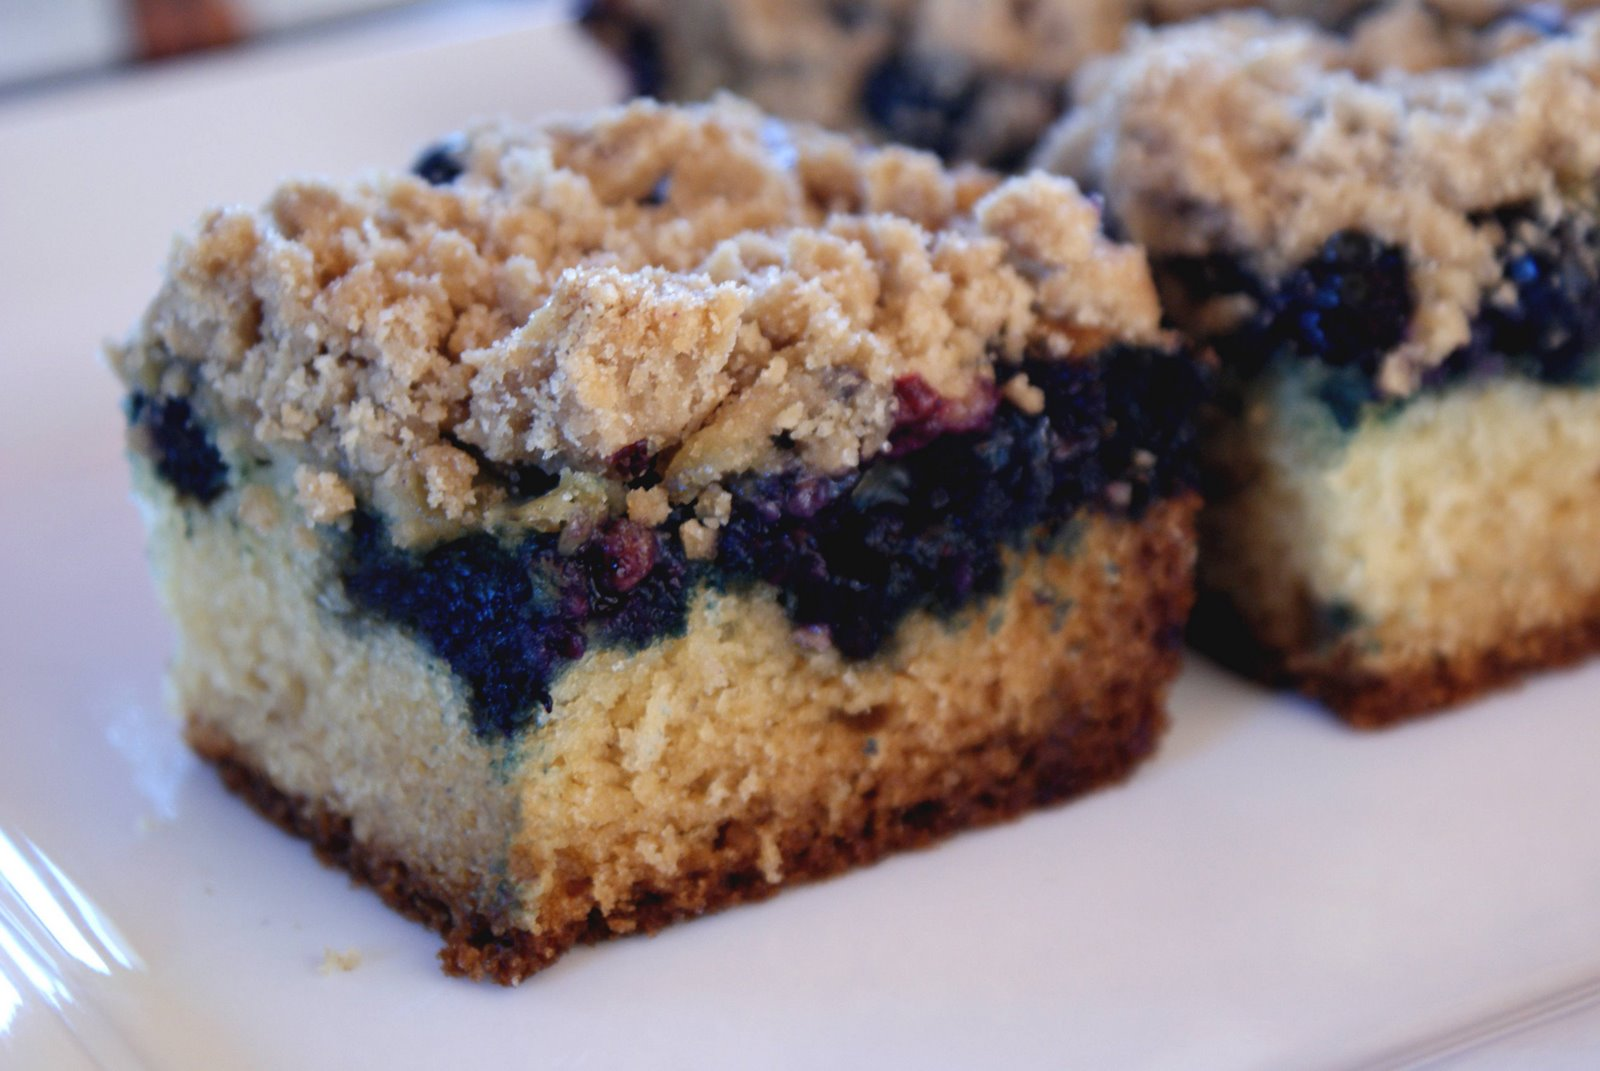 Blueberry+Crumb+Cake+-+2+pieces